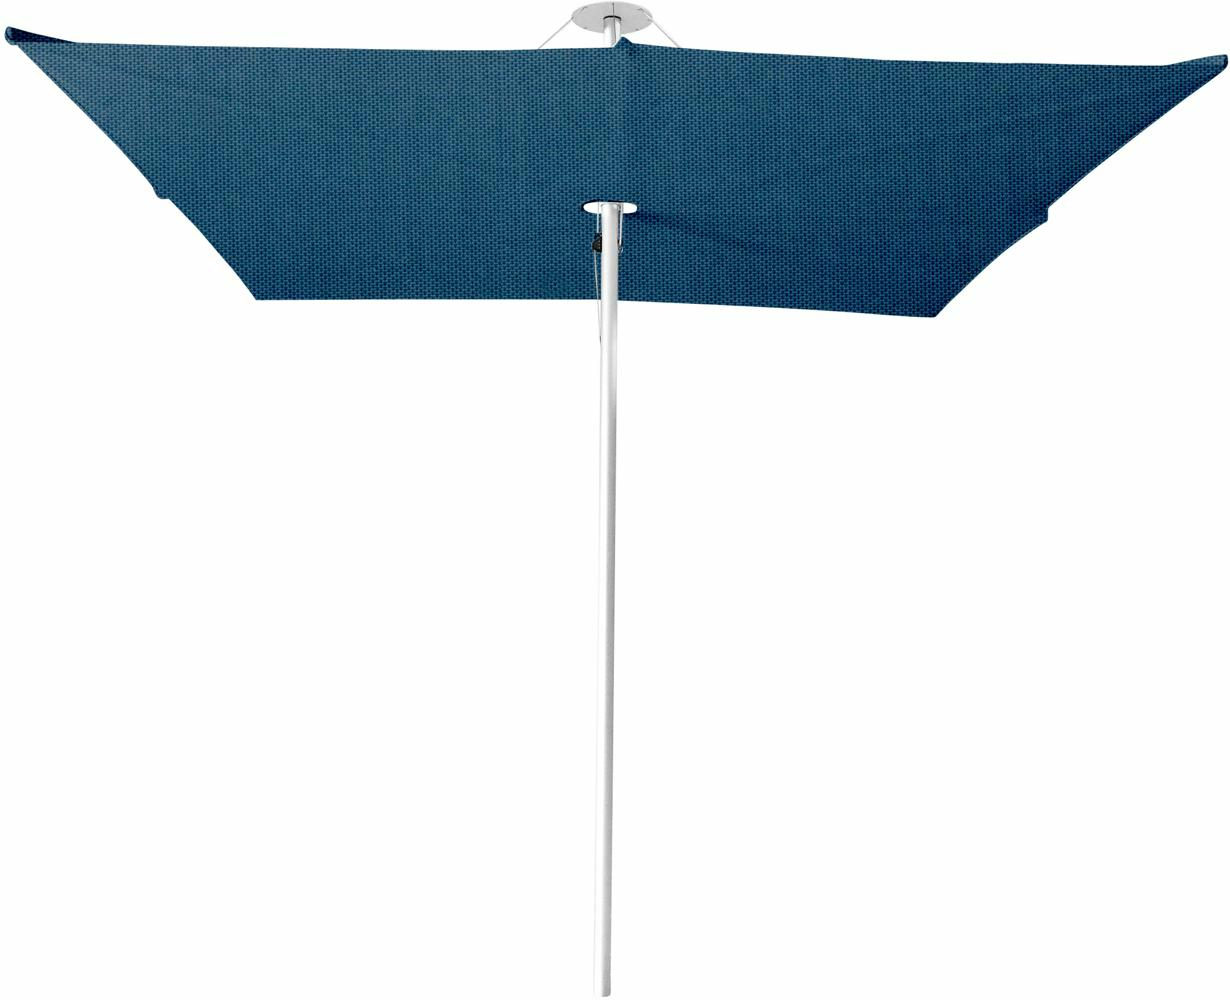 Infina canopy square 3 m in colour Blue Storm